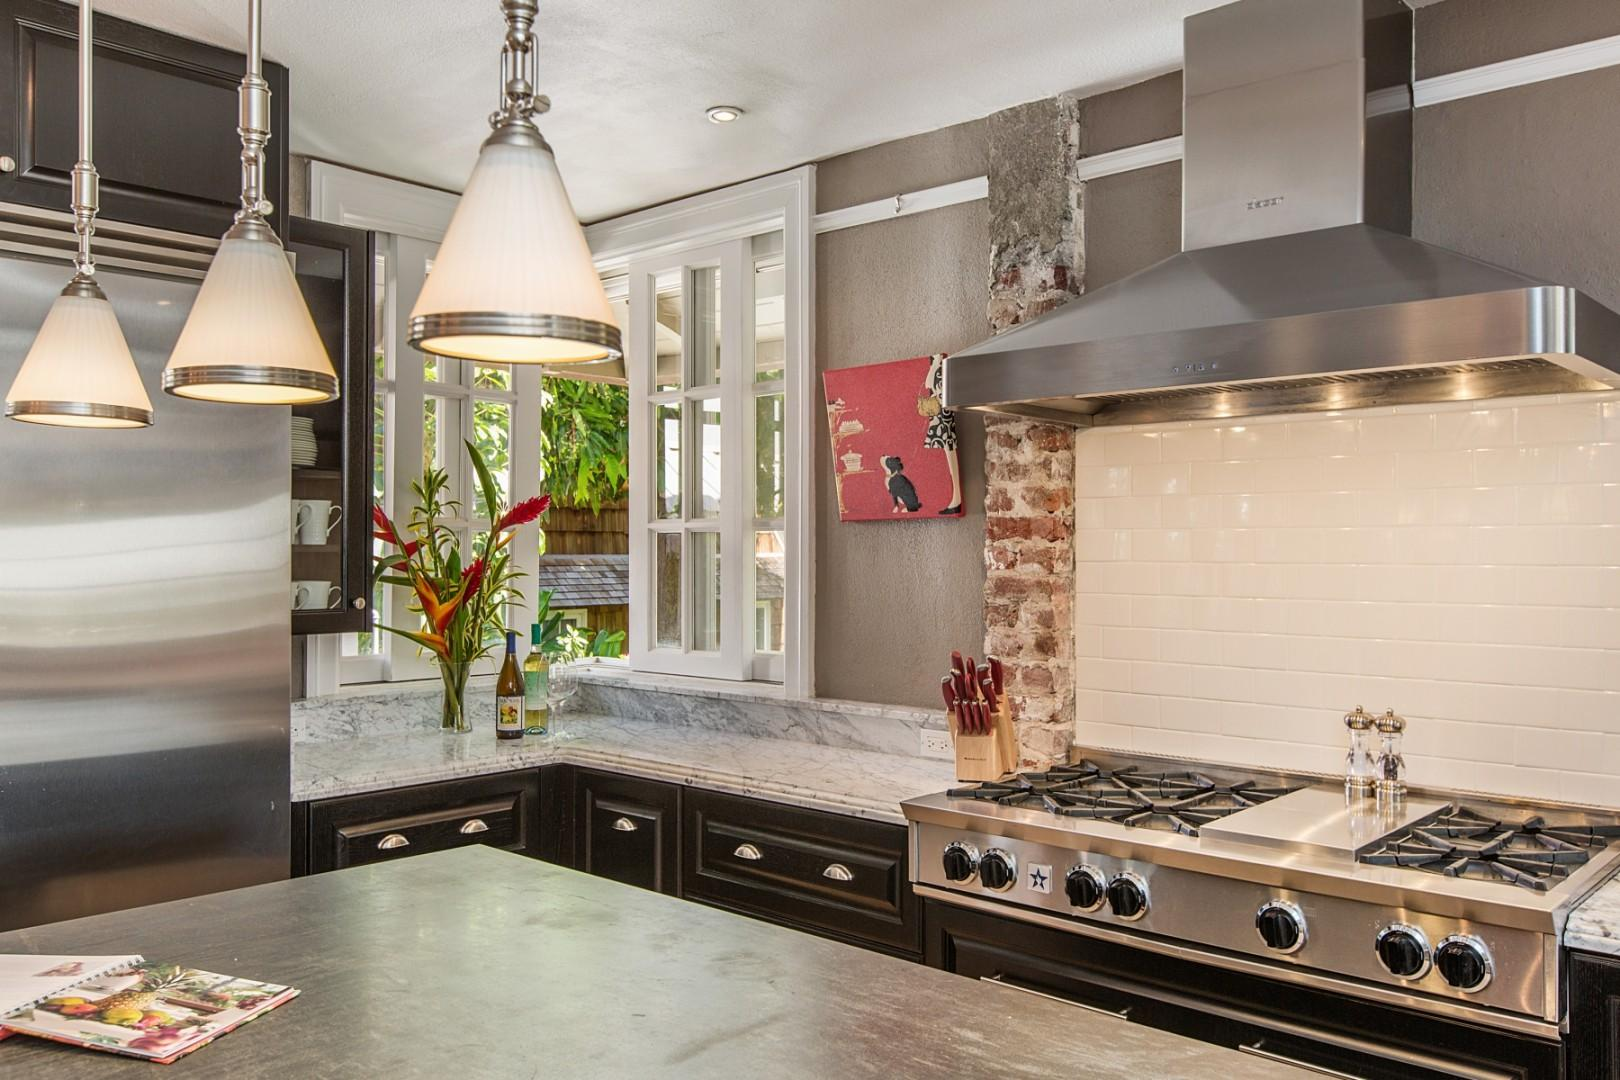 Chef's dream kitchen includes top-of-the-line appliances!